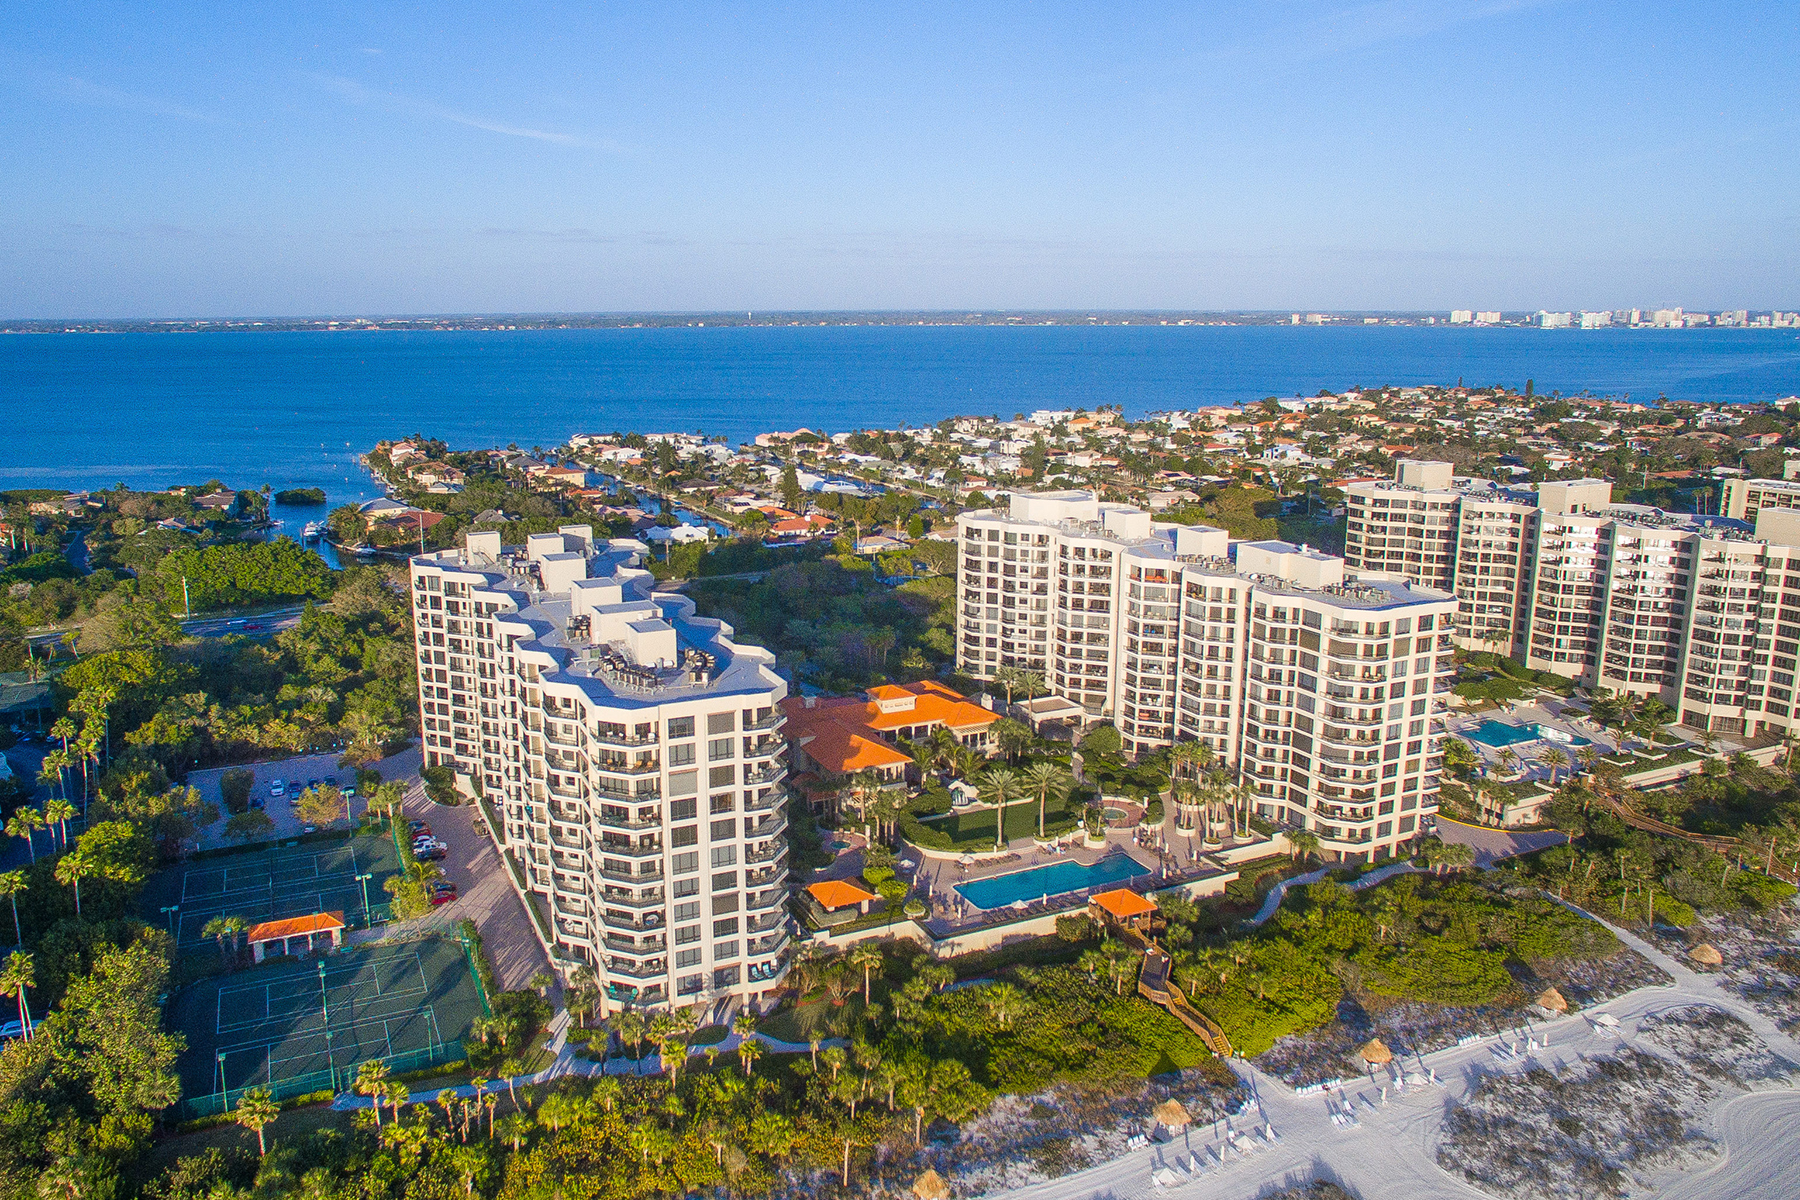 Condominium for Sale at WATER CLUB ON LONGBOAT KEY 1241 Gulf Of Mexico Dr 203 Longboat Key, Florida, 34228 United States